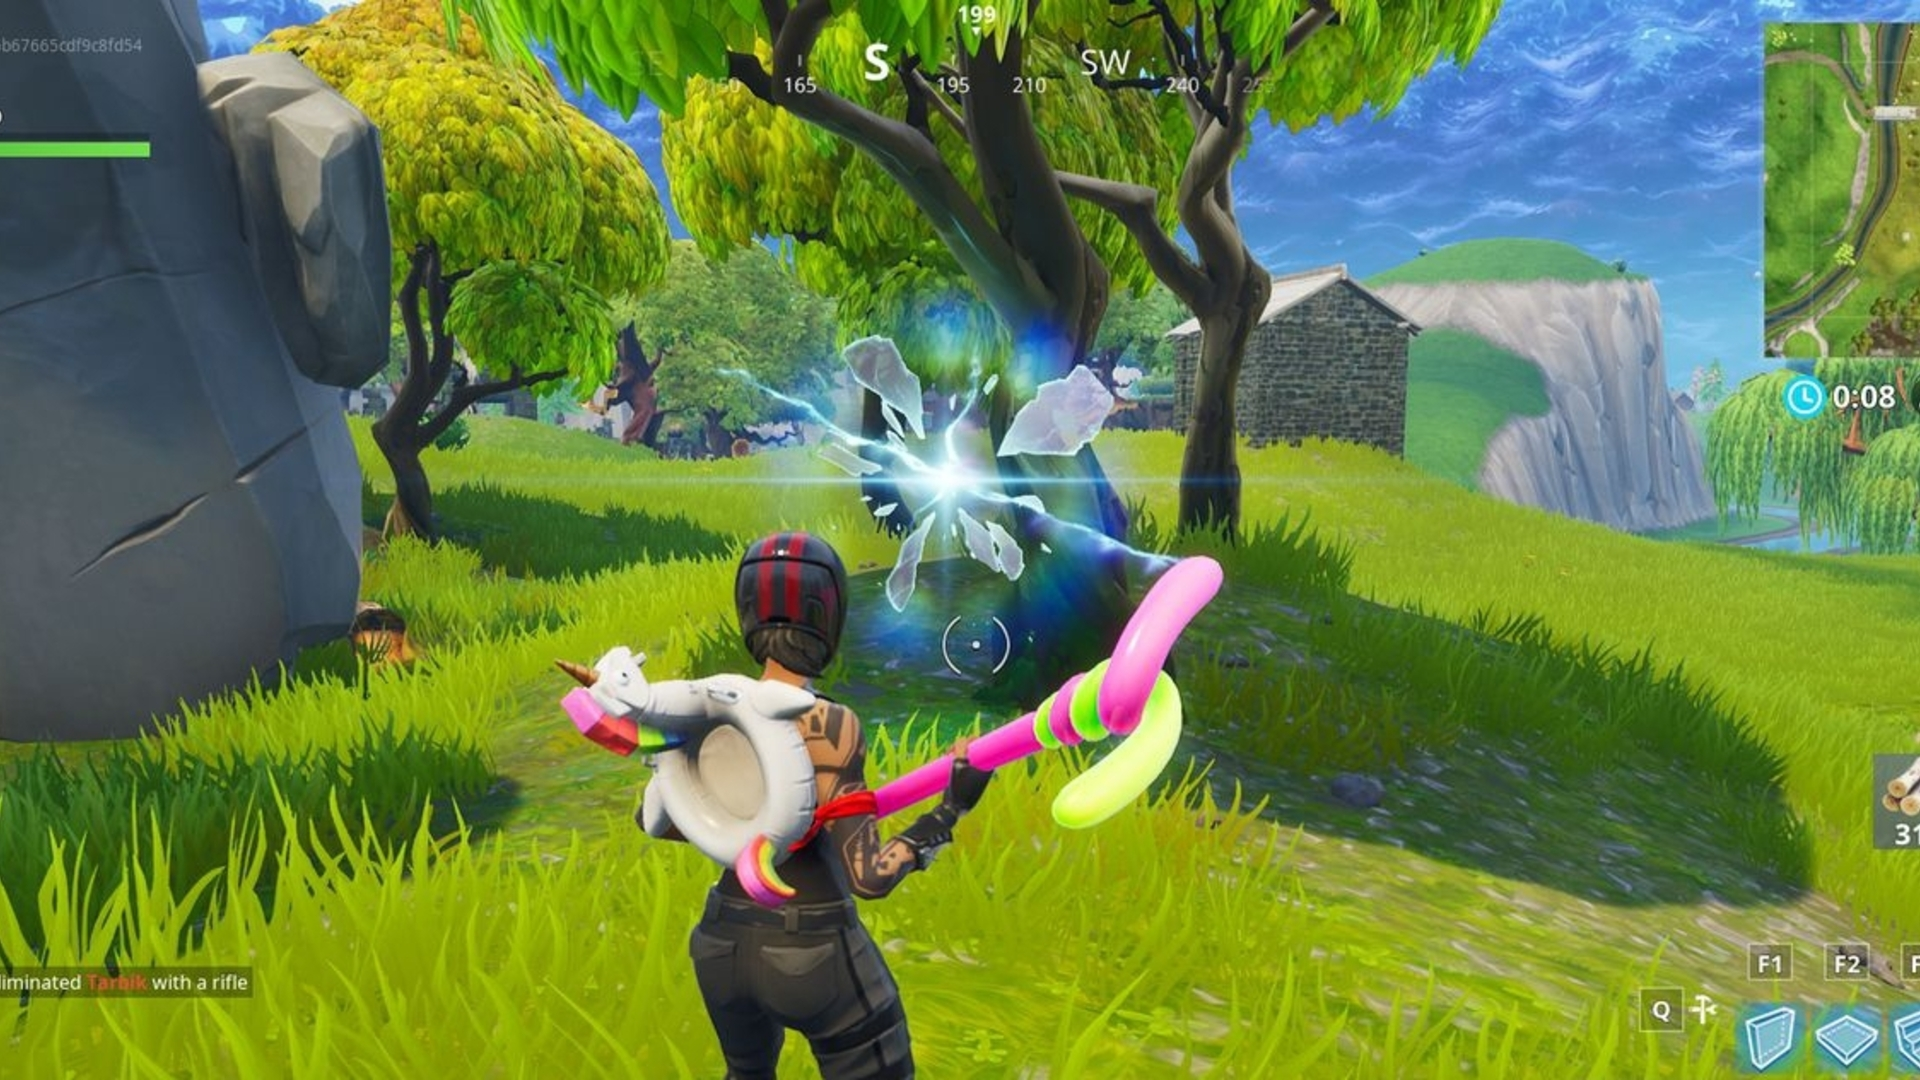 Fortnite Rift Locations How To Use A Rift At Different Rift Spawn